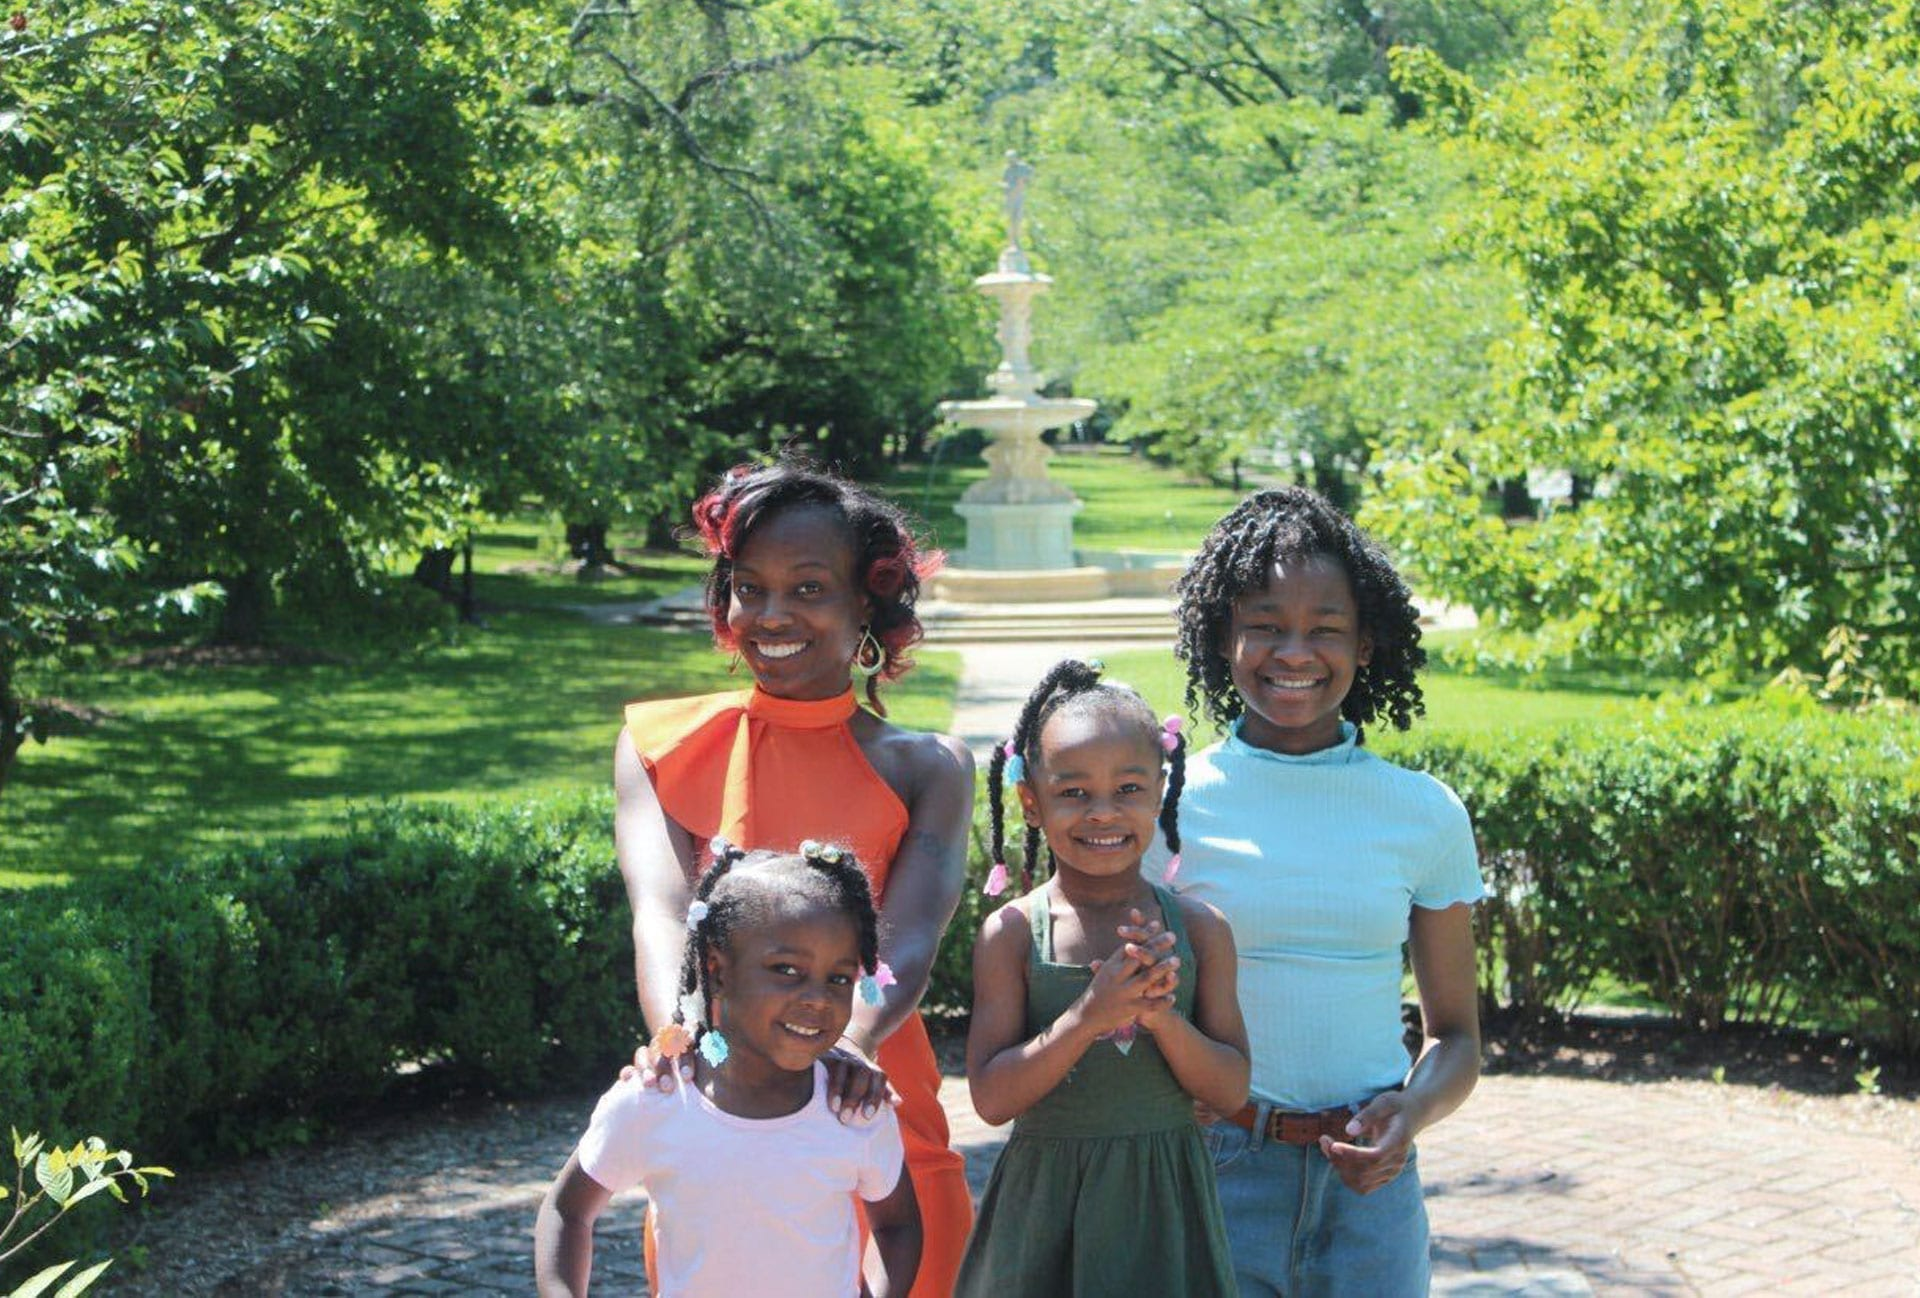 Shané Darby and her children.